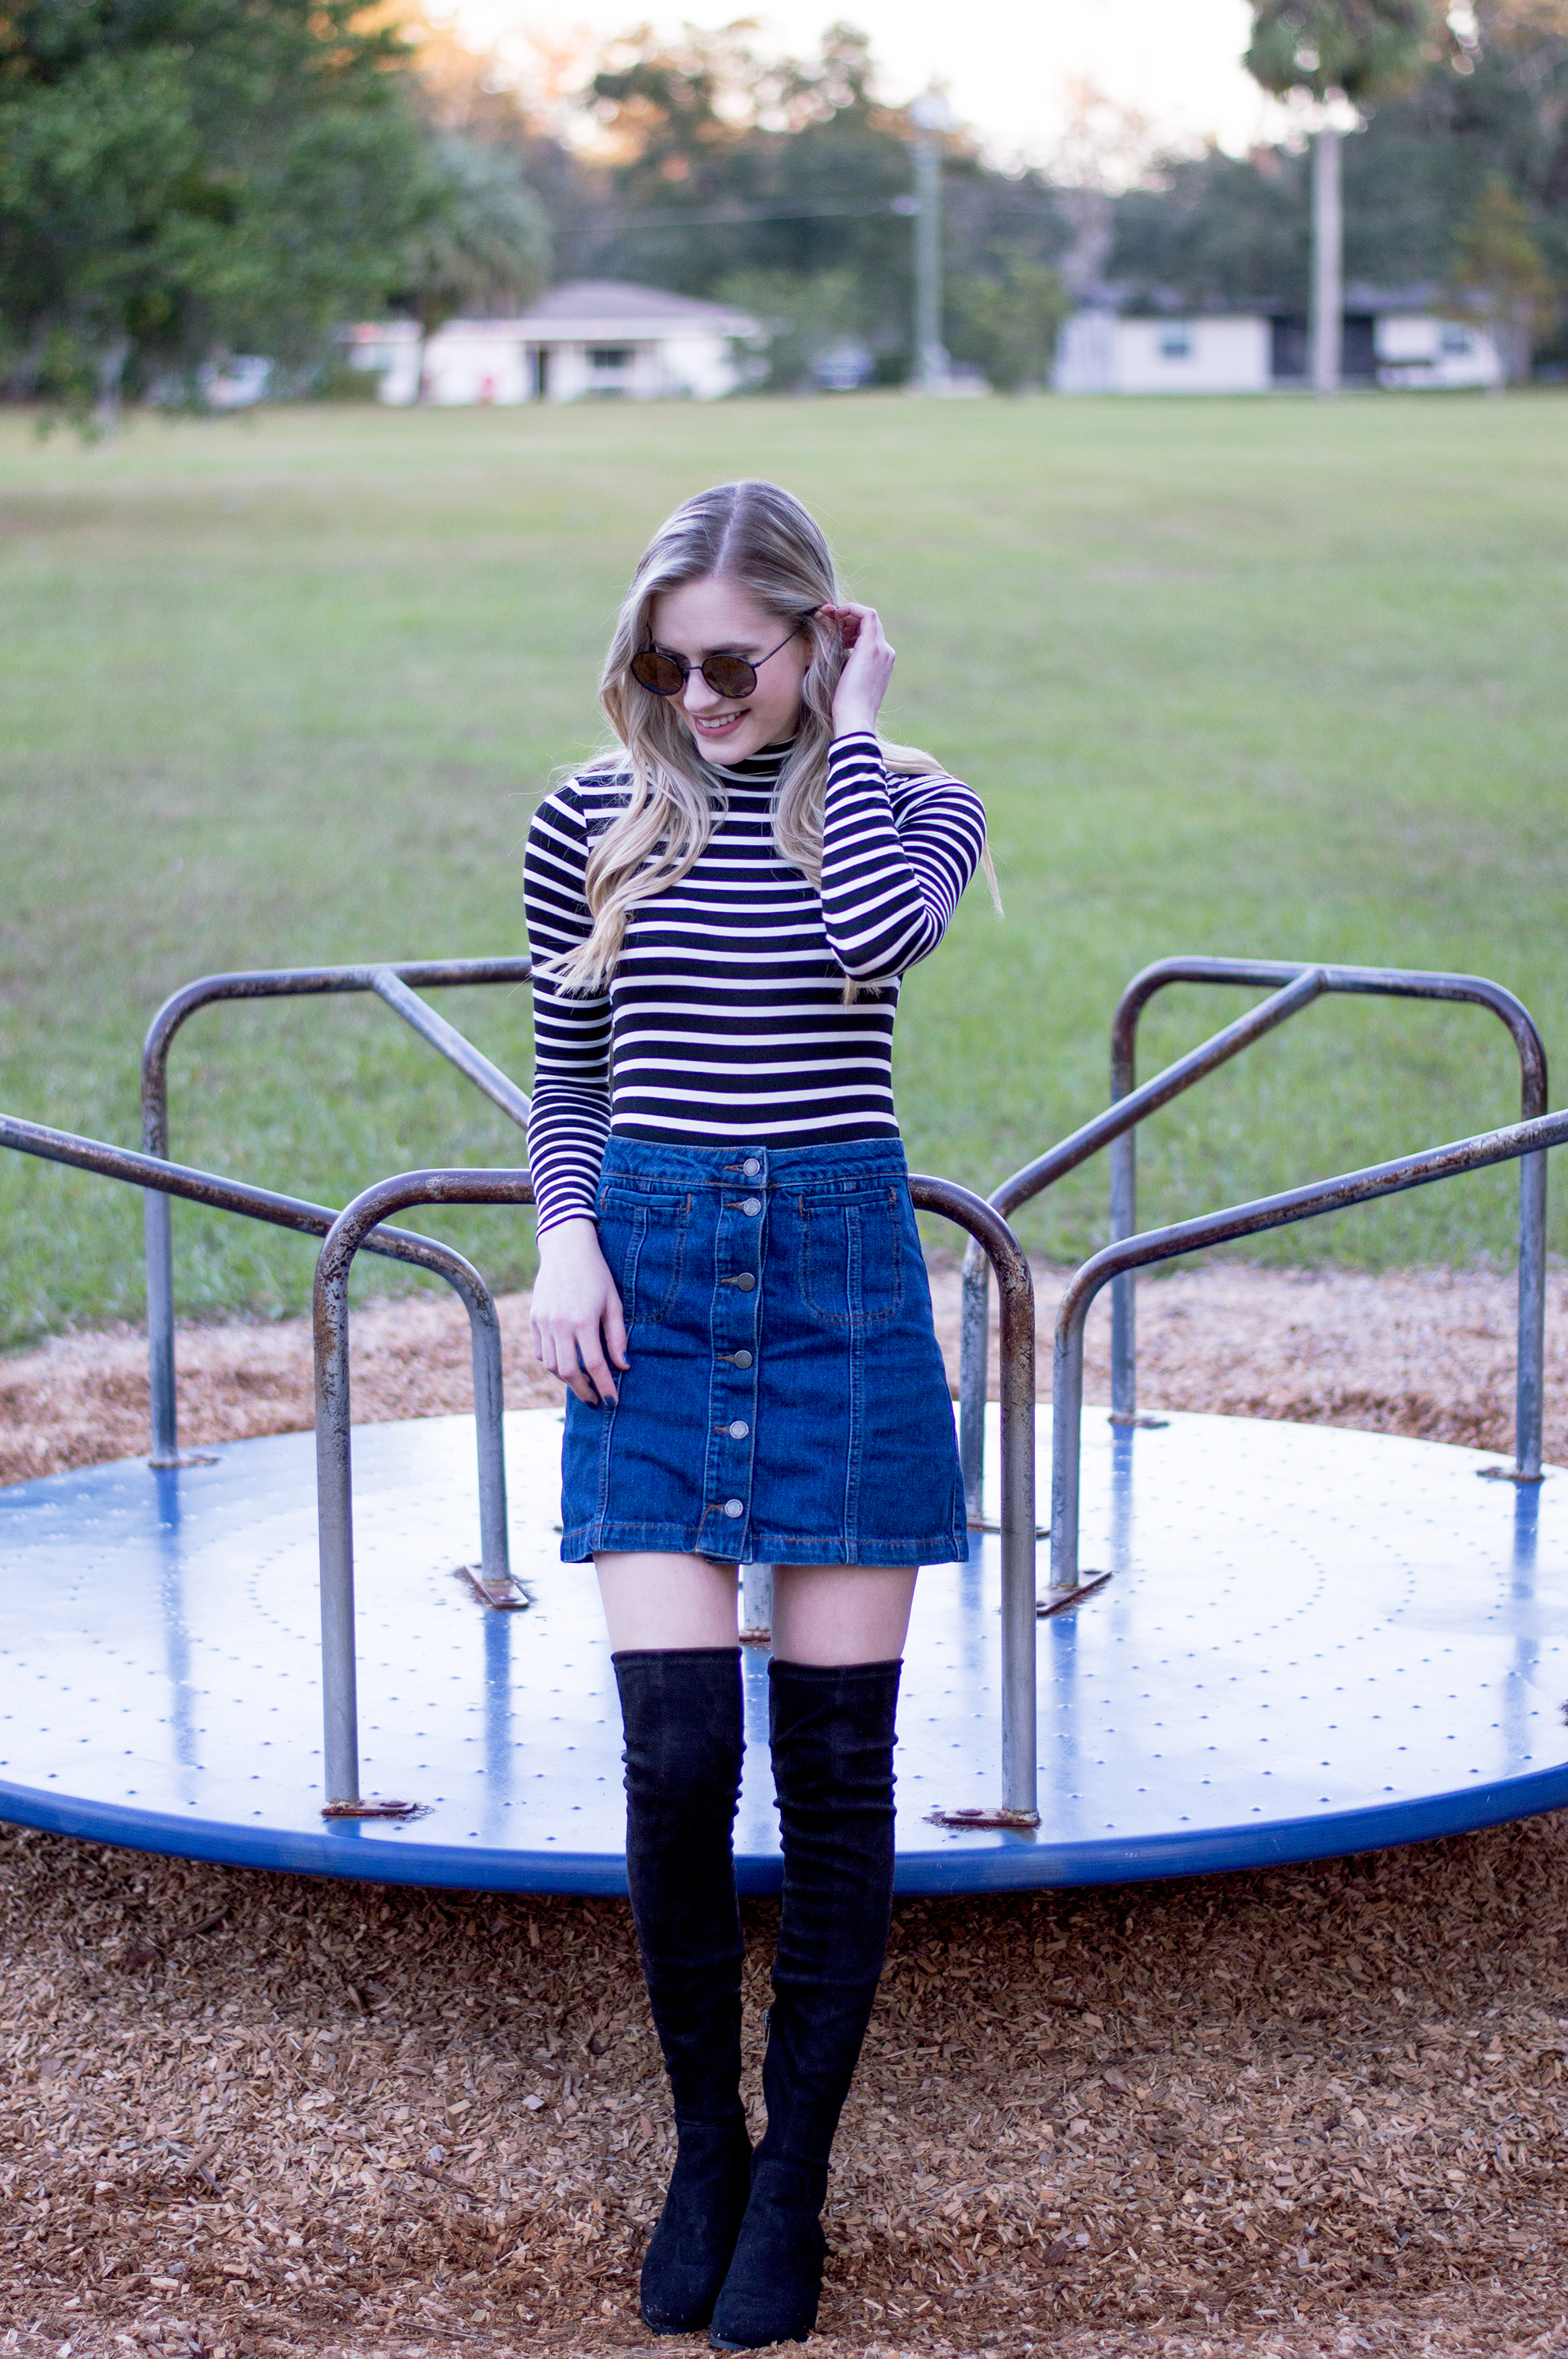 styelled_blog_fashion_lifestyle_beauty_style_blogger_topshop_forever_21_denim_skirt_striped_turtleneck_diff_eyewear_winter_style_fall_sweater_weather_over_the_knee_boots_01